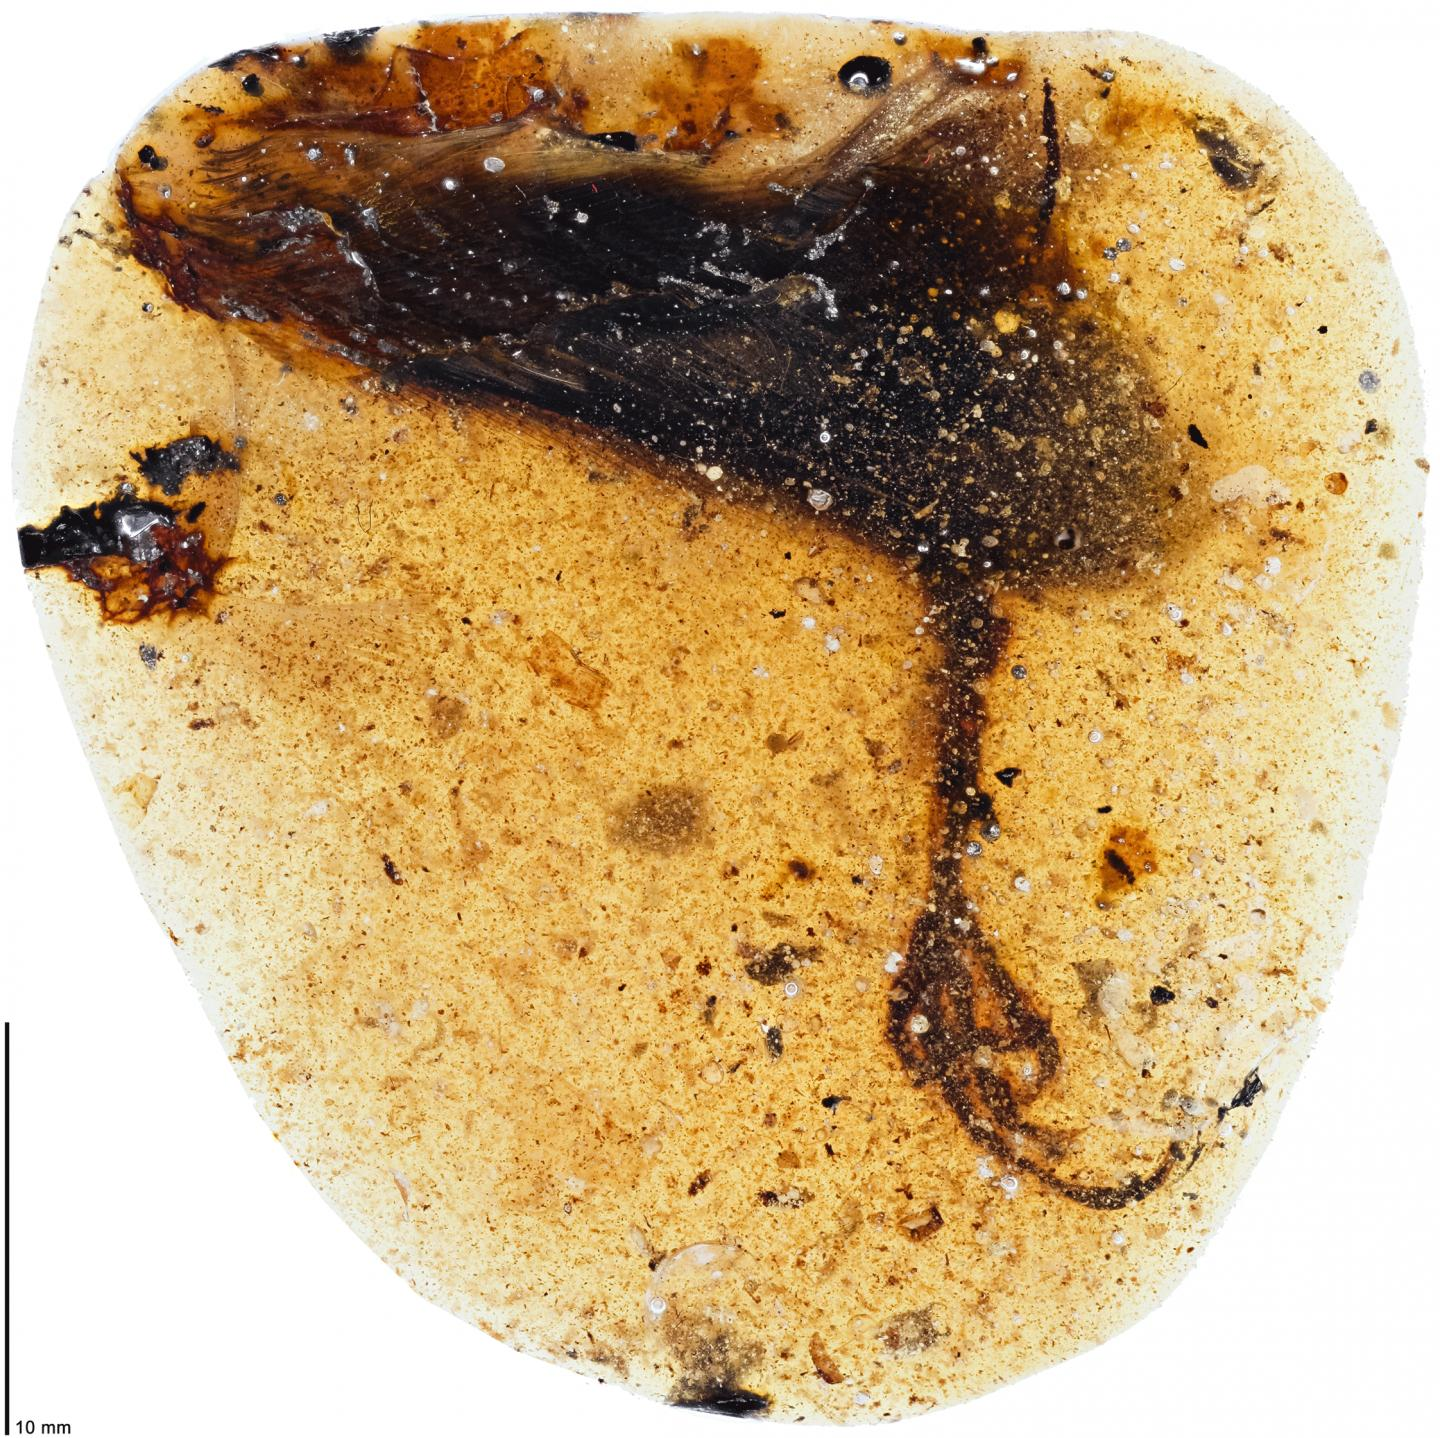 Bird with freaky long toes found in 99 million-year-old amber